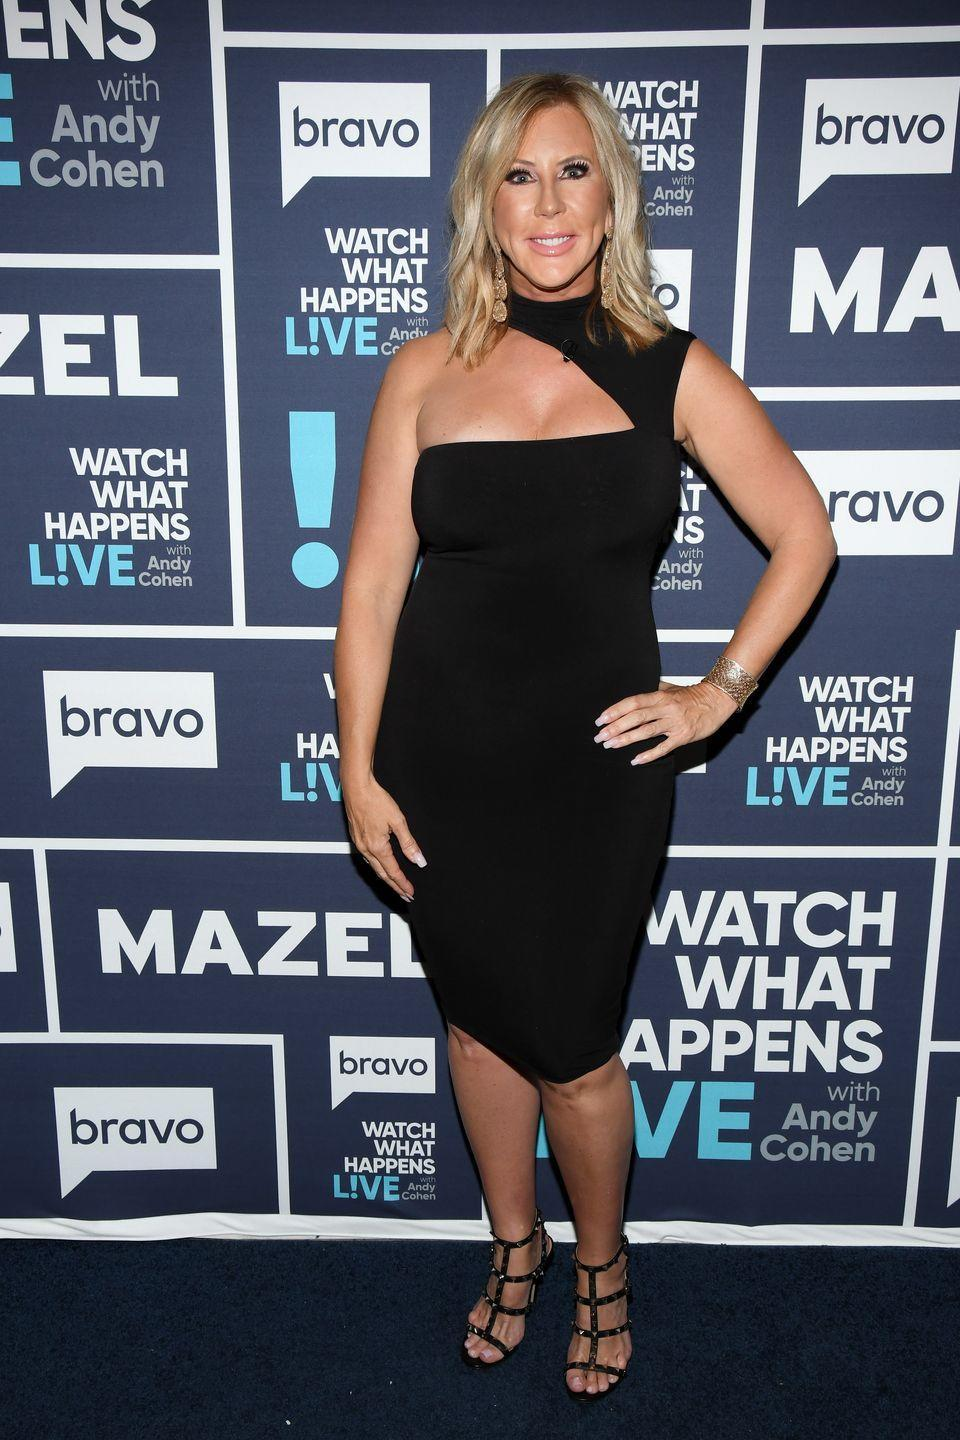 """<p>The O.G. of the O.C., Vicki Gunvalson, <a href=""""https://www.instagram.com/p/B7uSDKyFr7m/"""" rel=""""nofollow noopener"""" target=""""_blank"""" data-ylk=""""slk:ended her run"""" class=""""link rapid-noclick-resp"""">ended her run</a> on the <em>Real Housewives of Orange County</em> after a record 14 seasons. Vicki was the original <em>Real Housewives</em> star—since making her debut on Bravo in 2006, she was at the center of the series' transformation from a voyeuristic look """"behind the gates"""" into the dramatic series that we all came to know and love. Her final season on the show was fraught with tension with Bravo after she was <a href=""""https://radaronline.com/videos/vicki-gunvalson-demoted-rhoc-not-in-cast-pic-friend-not-fulltime-housewife/"""" rel=""""nofollow noopener"""" target=""""_blank"""" data-ylk=""""slk:demoted"""" class=""""link rapid-noclick-resp"""">demoted </a>from full-time Housewife to Friend, because she didn't have a storyline for the new season.</p>"""